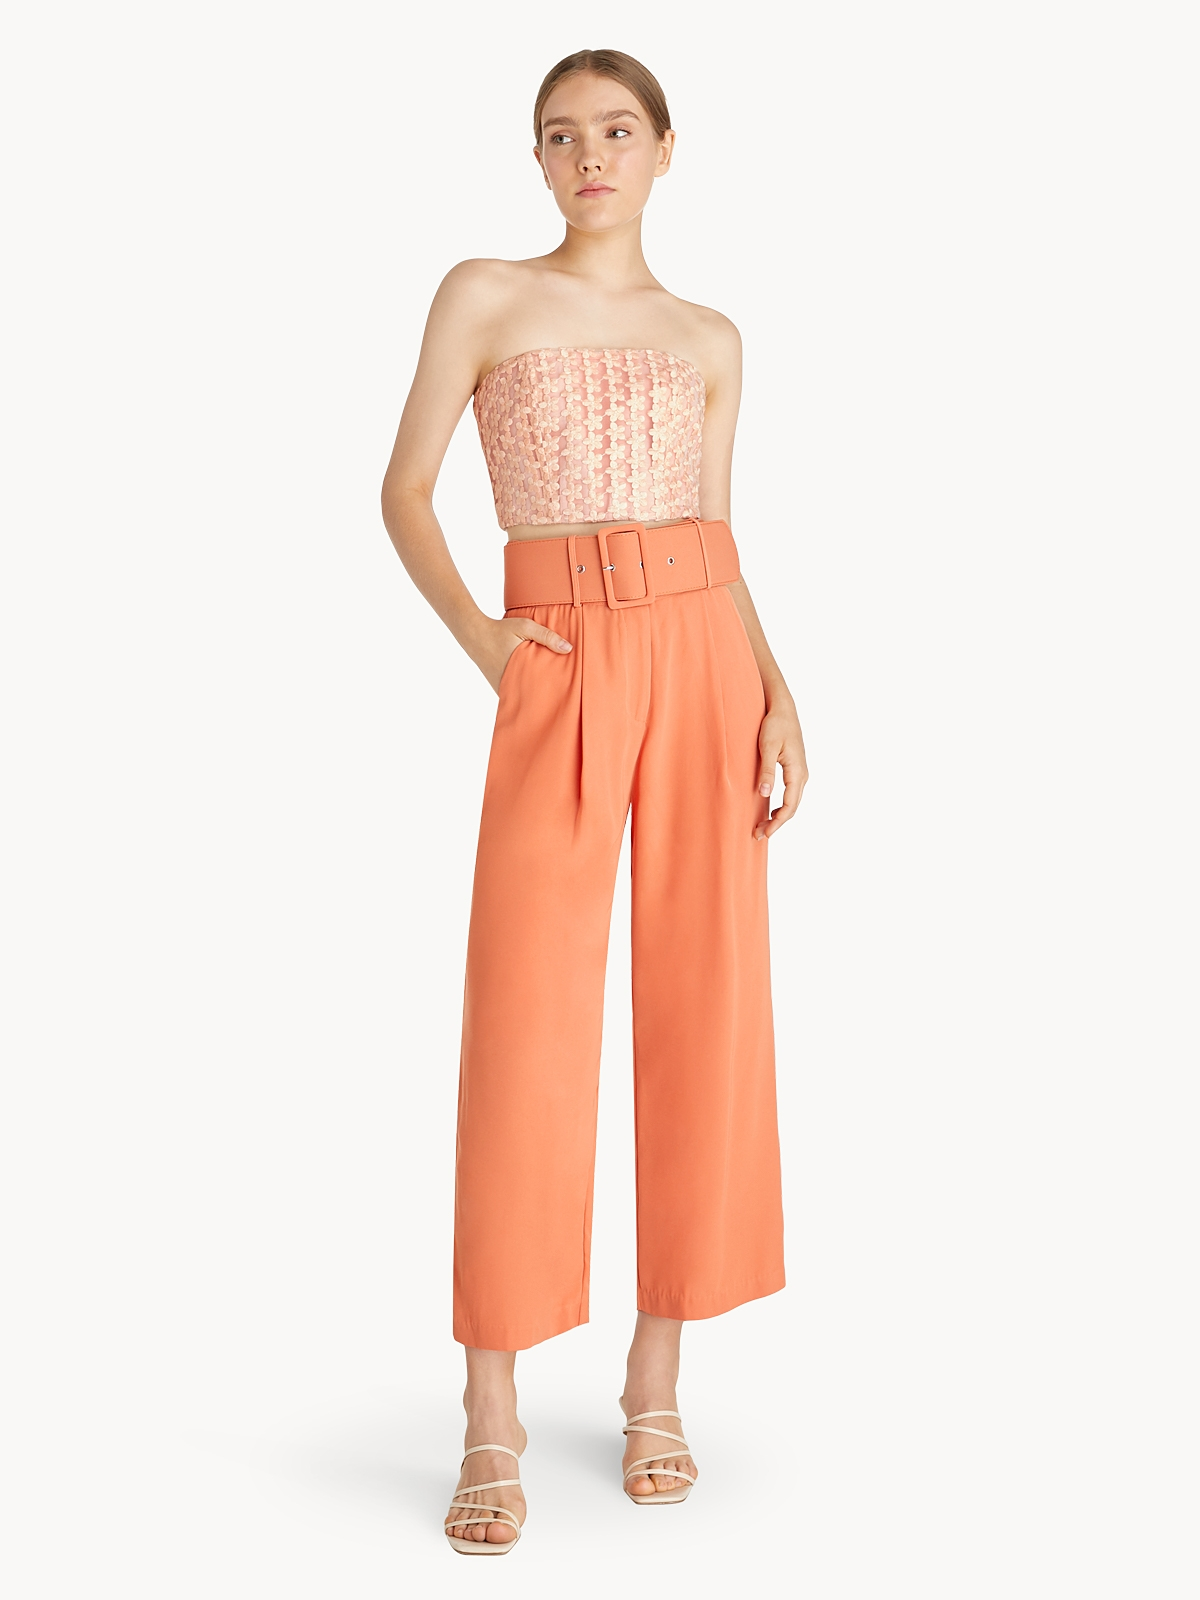 Floral Lace Tube Top Peach